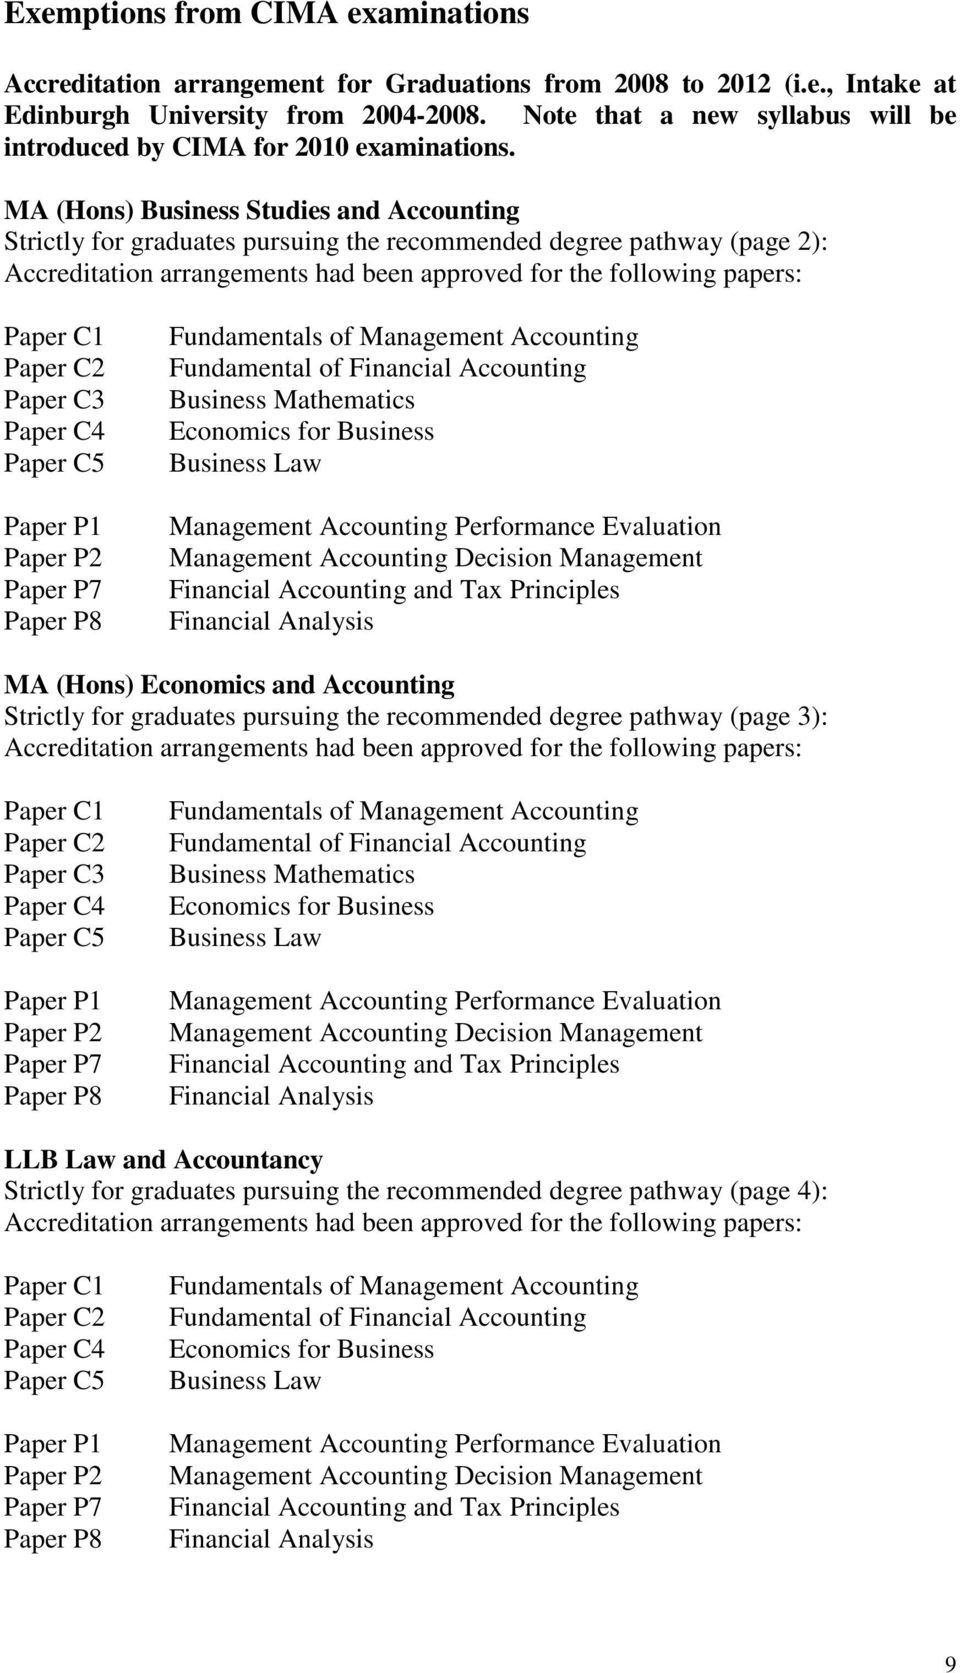 MA (Hons) Business Studies and Accounting Strictly for graduates pursuing the recommended degree pathway (page 2): Accreditation arrangements had been approved for the following papers: Paper C1